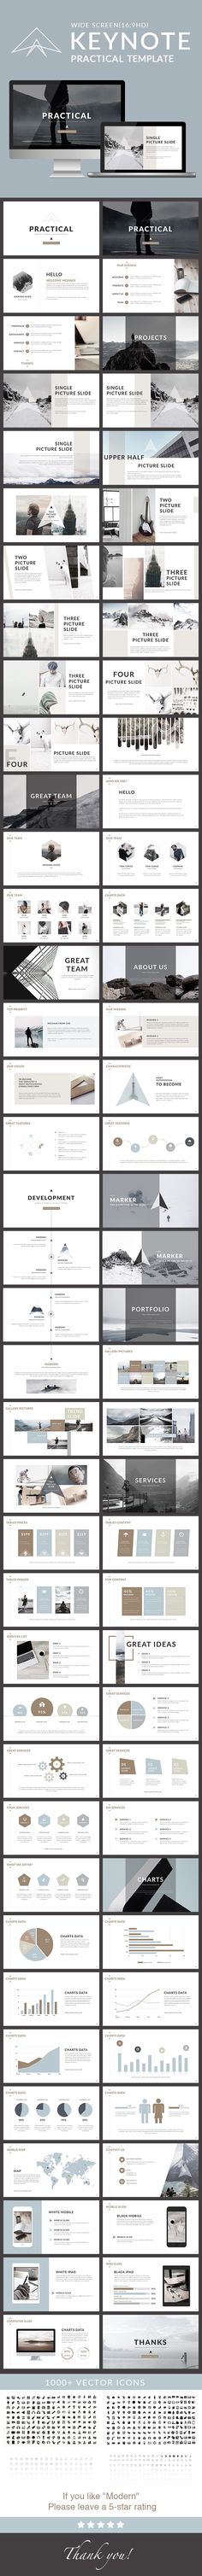 Practical - Clean trend Keynote Template. Download here: http://graphicriver.net/item/practical-clean-trend-keynote-template/16763325?ref=ksioks